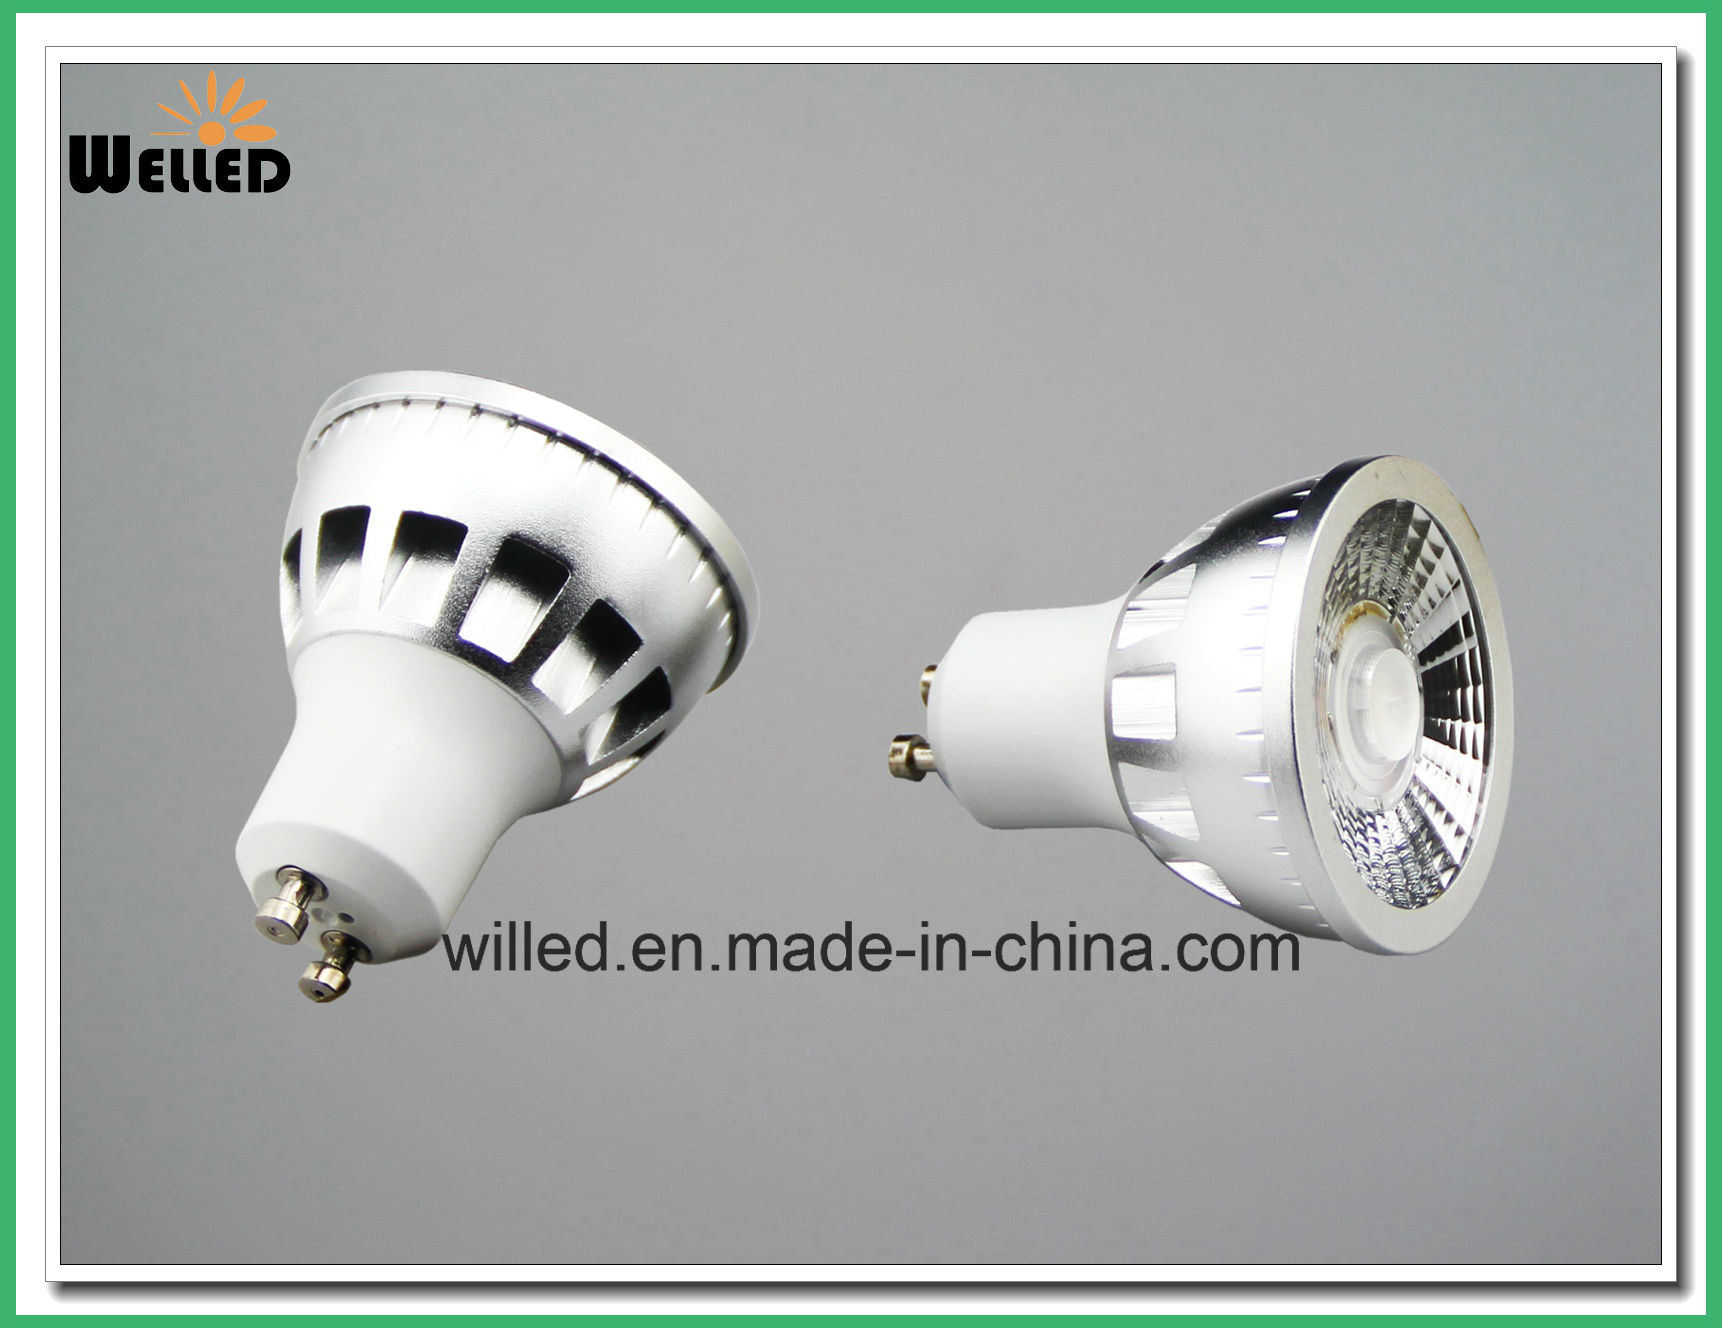 220V/110V 0-100% Traic Dimmable Pure Aluminum 5W LED GU10 Spotlight Spot Light 80ra 90ra 95ra with Narrow Angle